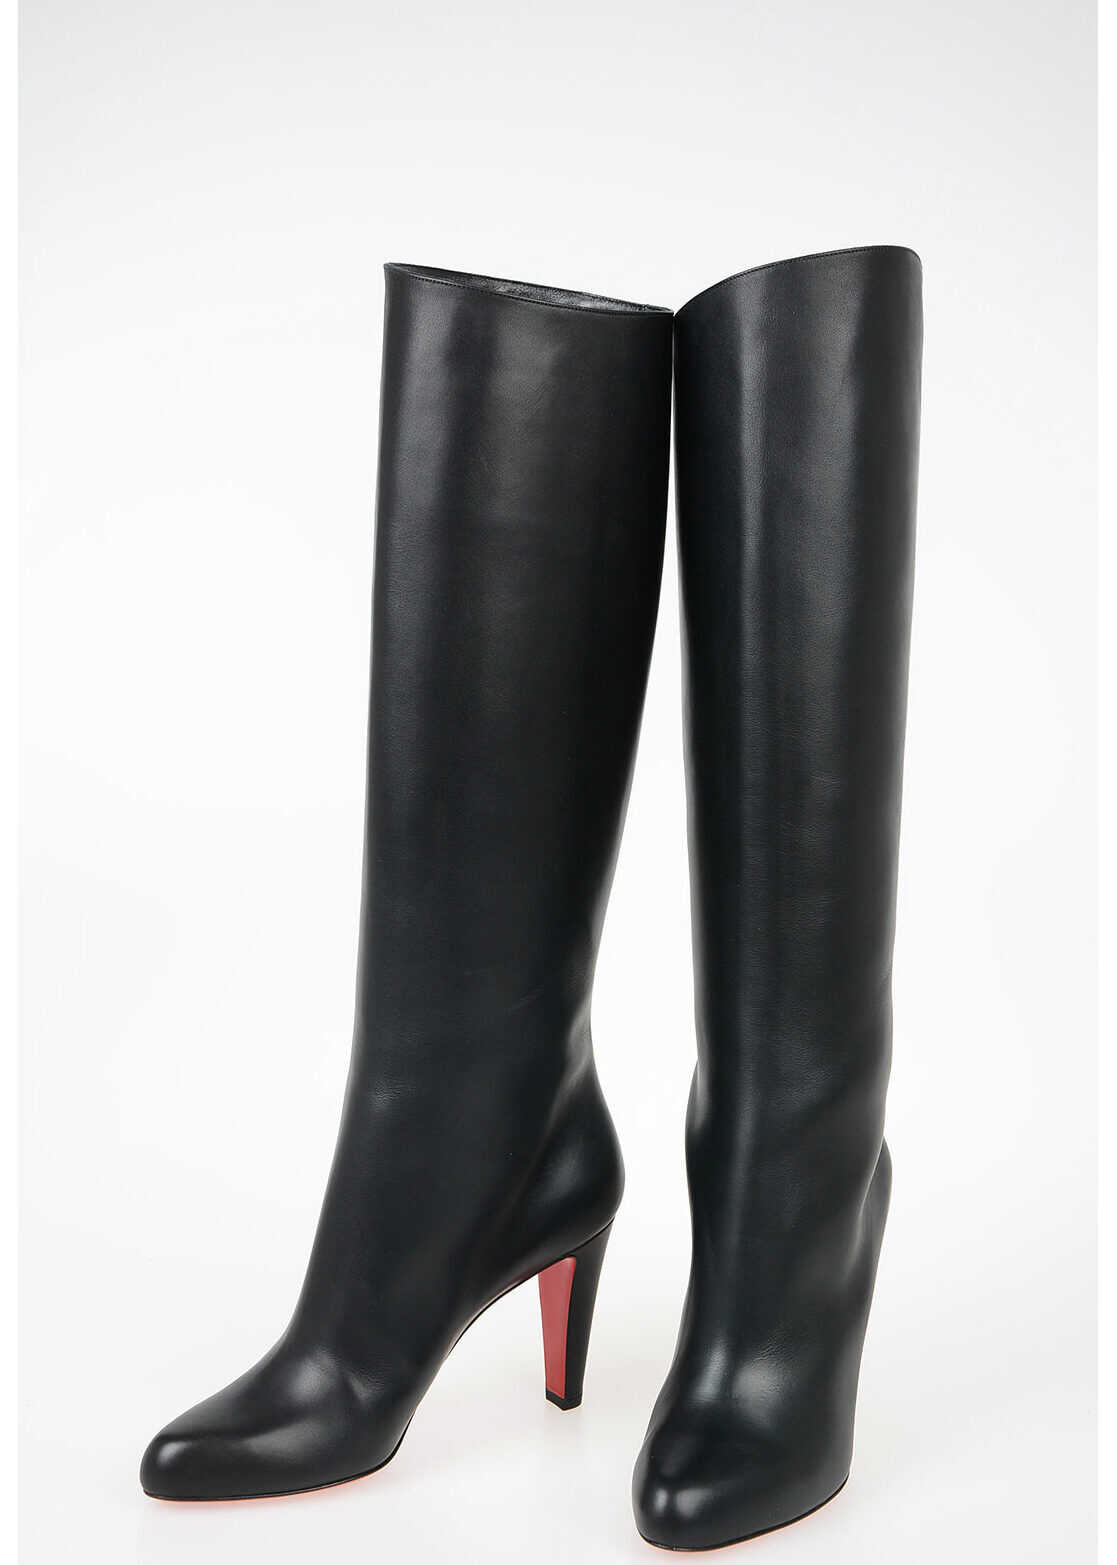 Christian Louboutin 9cm Leather Boots BLACK